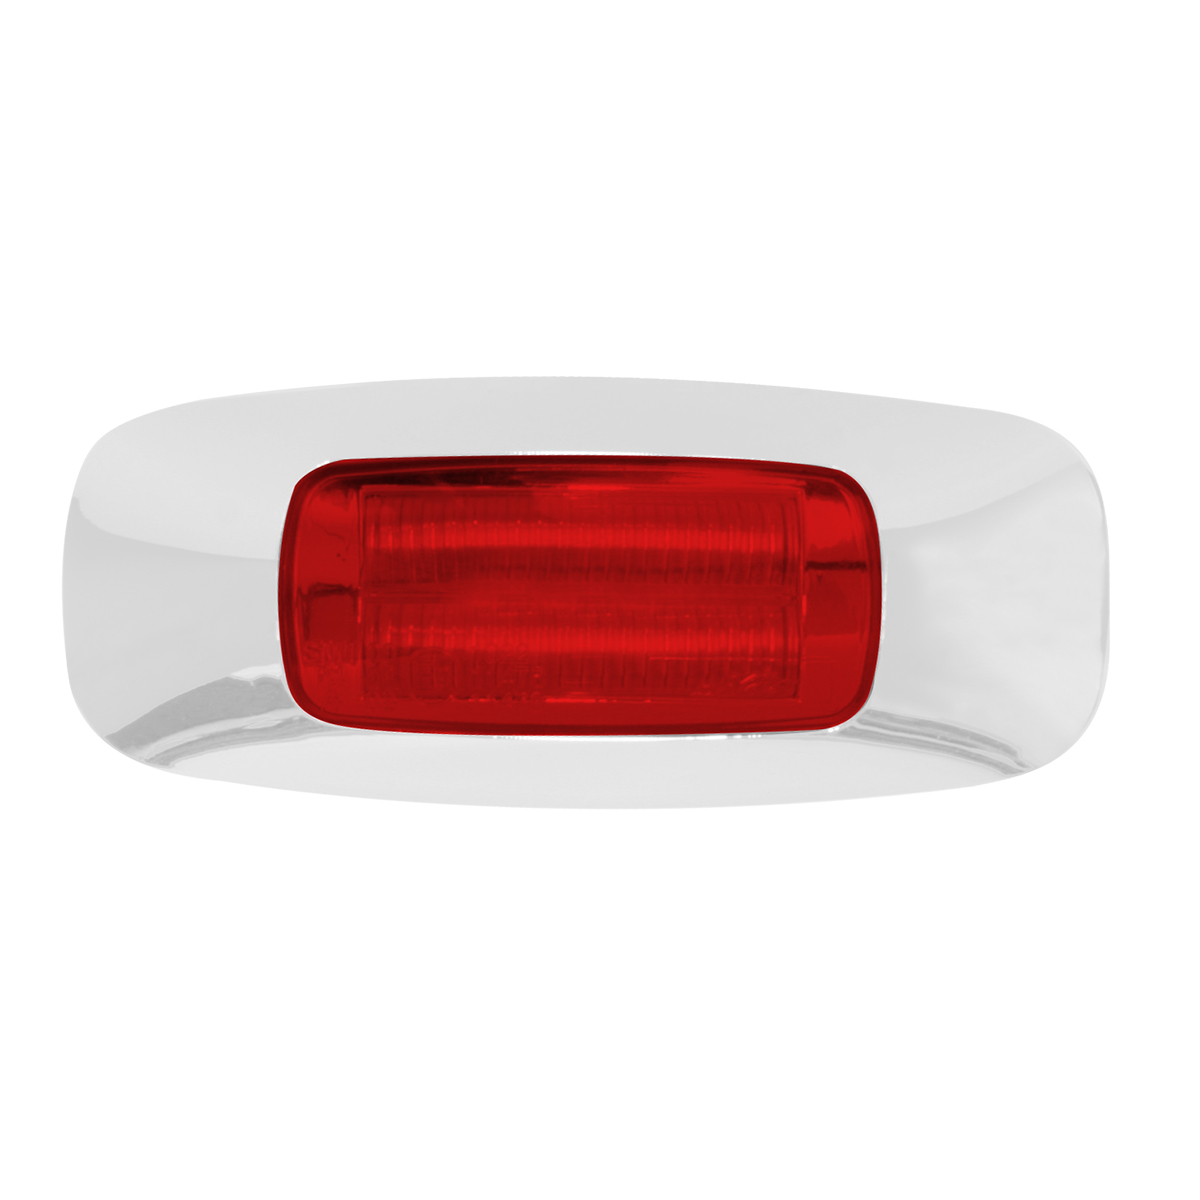 "74822 3.5"" Rectangular Prime LED Marker Light in Red/Red"